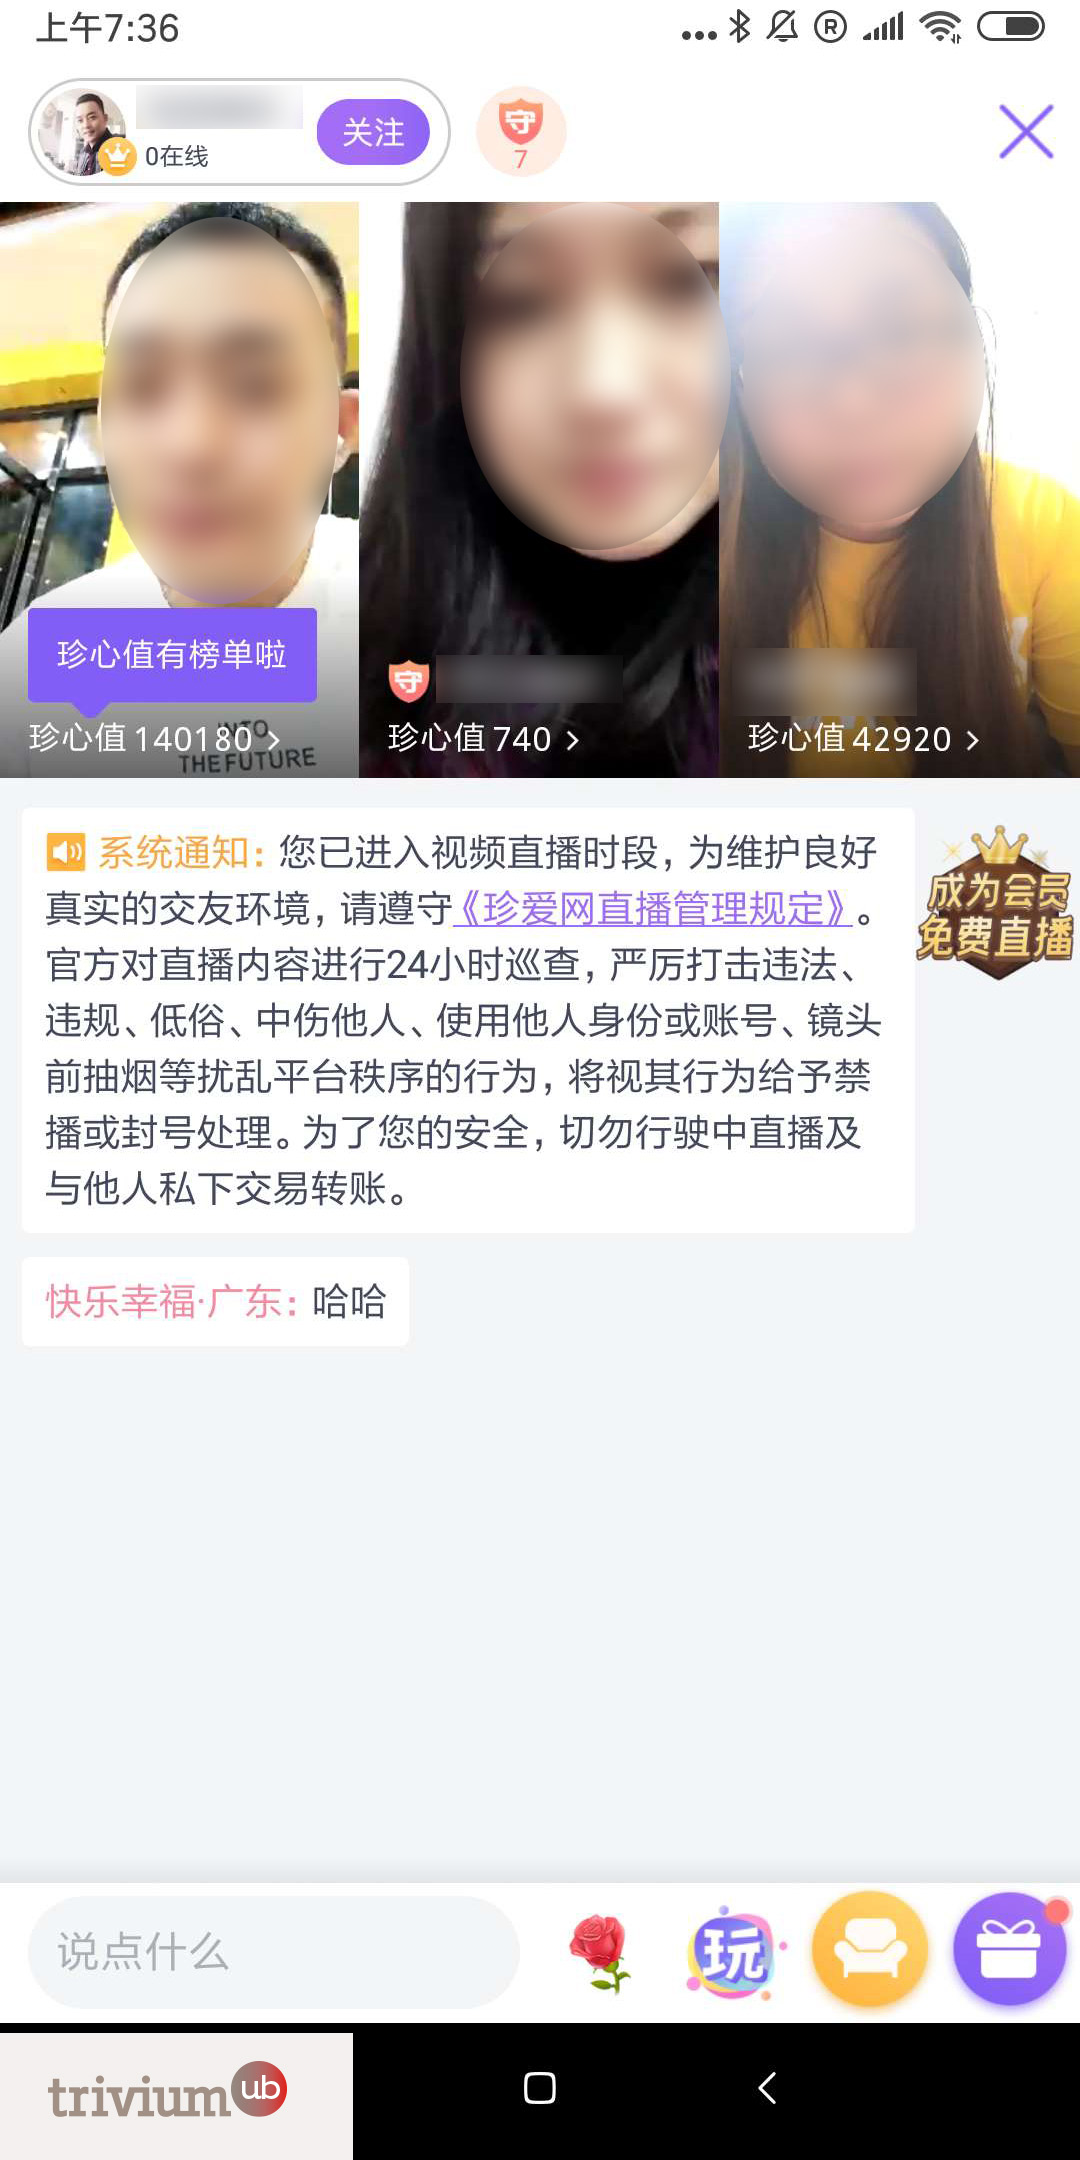 Chinese app usability feature research: dating apps matchmaking love apps live-streaming video